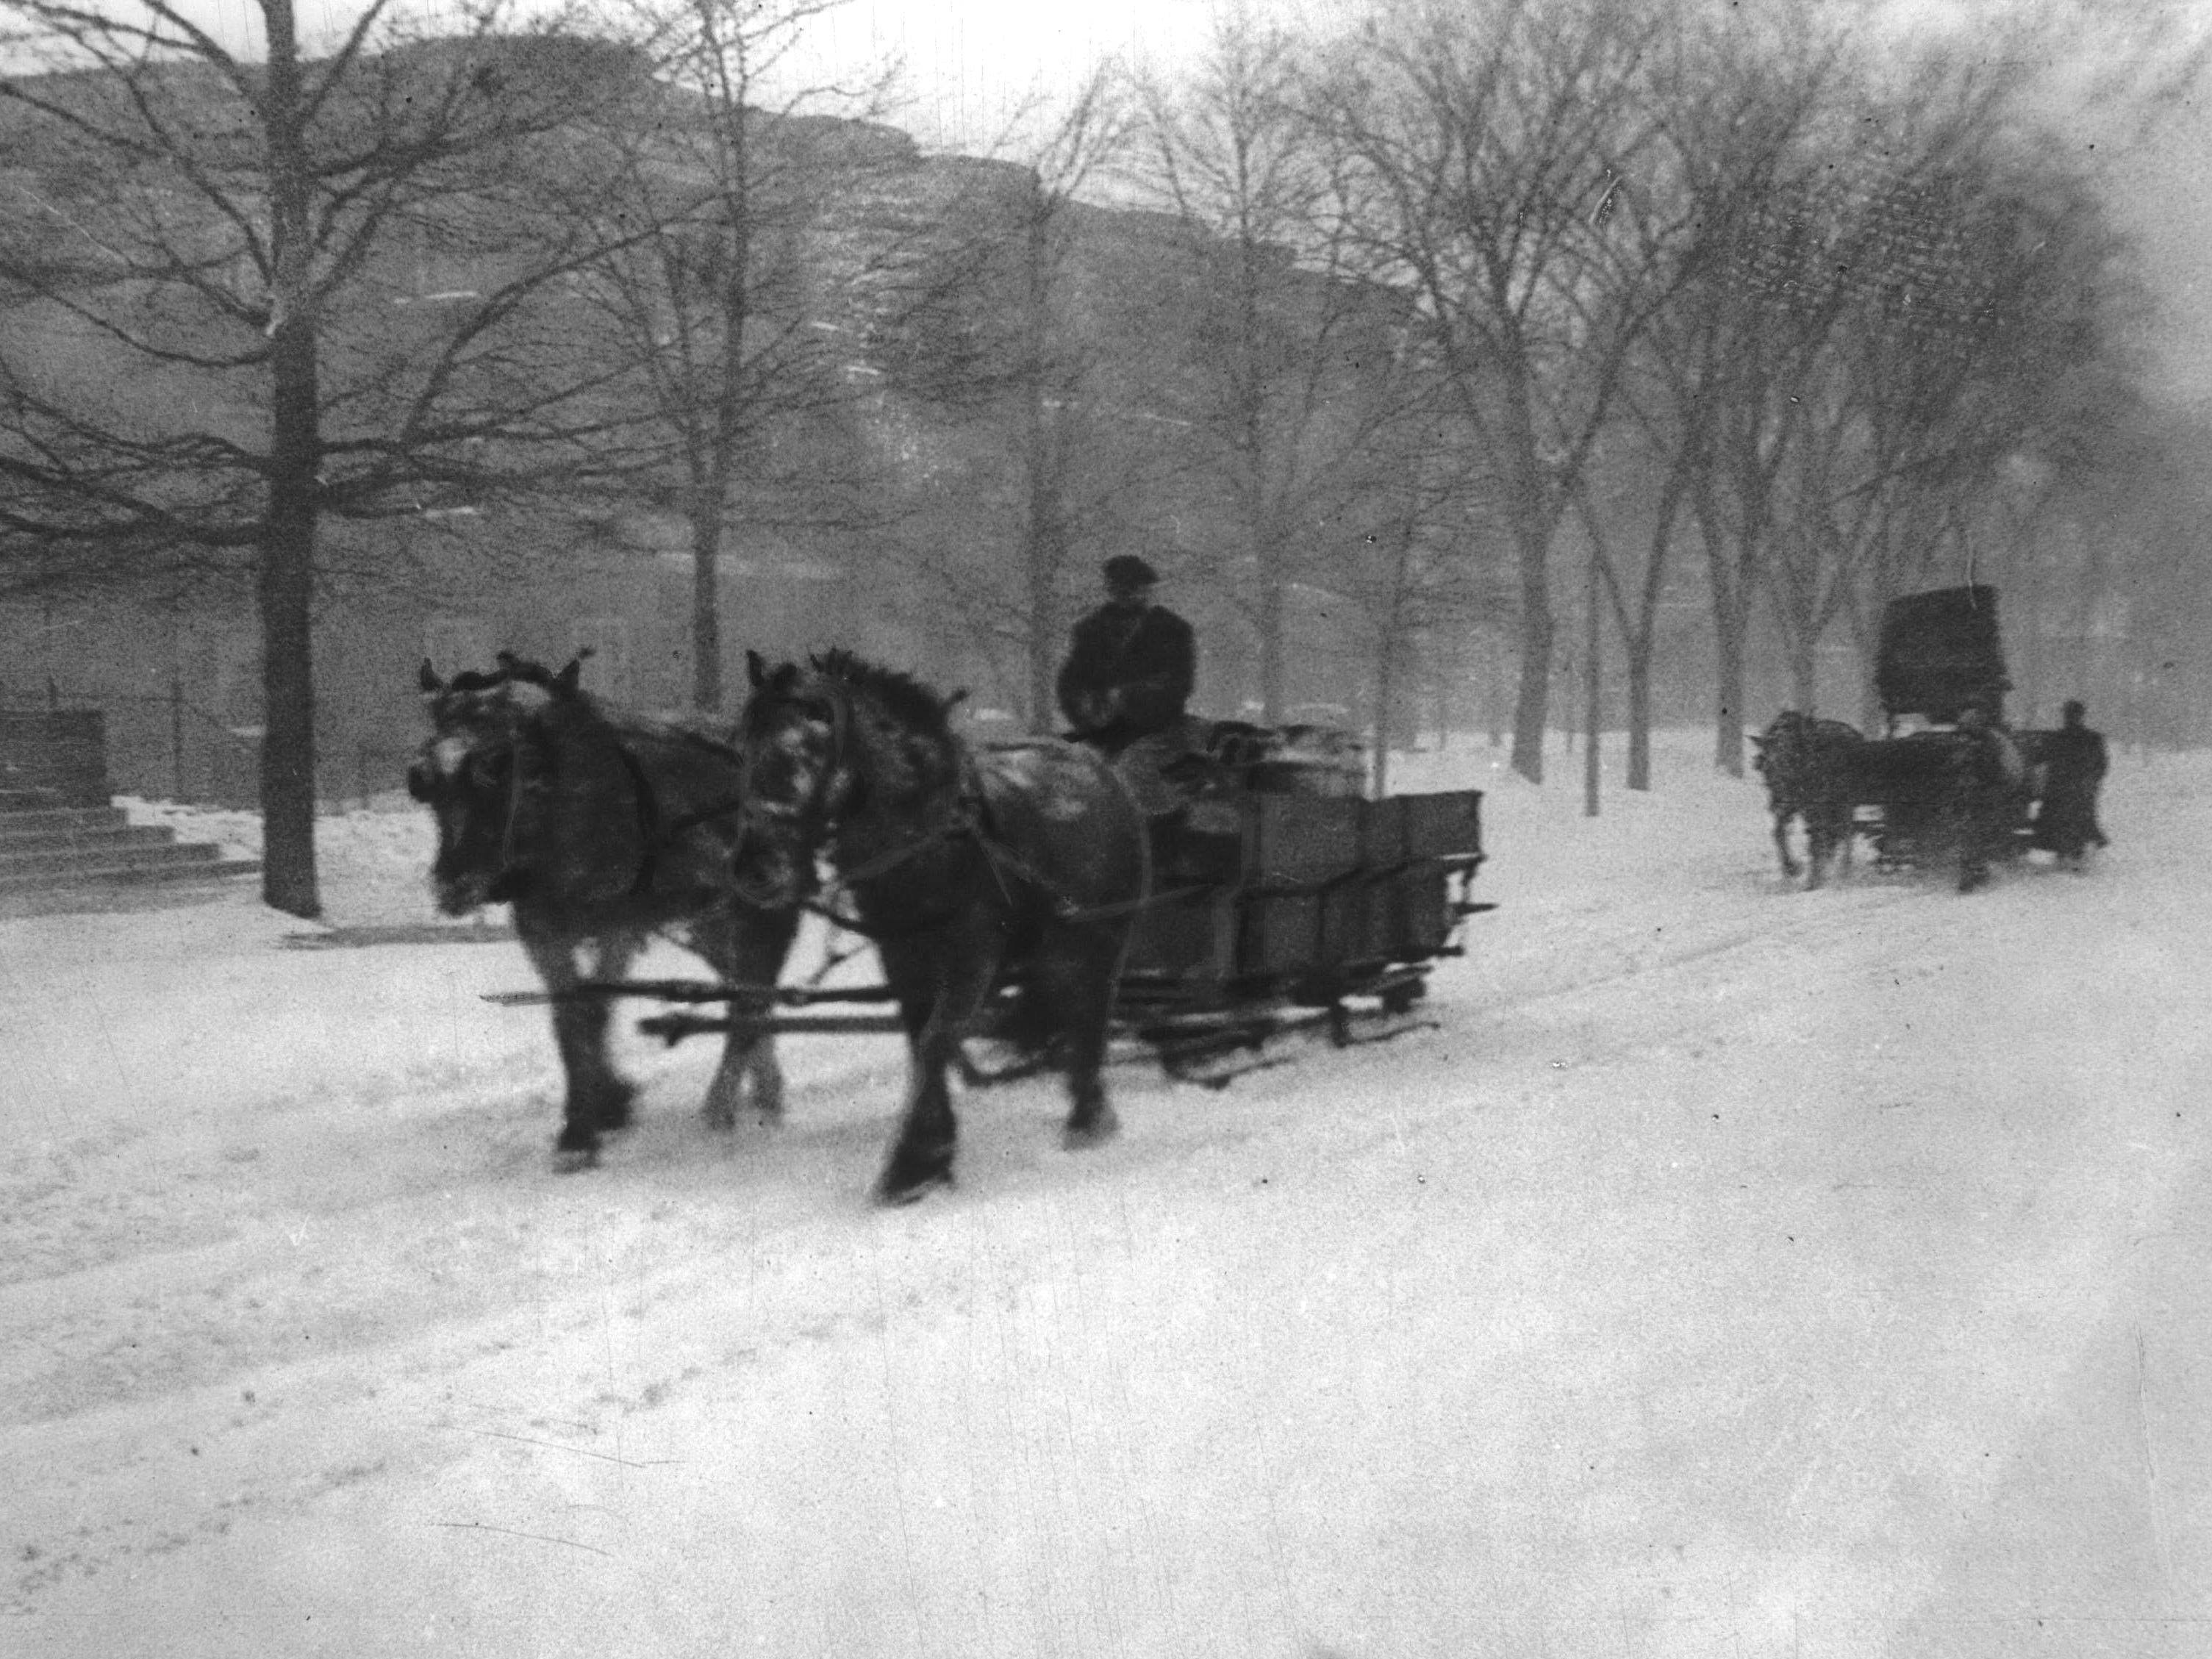 Milwaukee saw its then worst recorded snowstorm on Feb.  4-5, 1924 when 20.3 inches blanketed the city. Despite the weather, milk sleds from Waukesha delivered product to Gridley Dairy on 8th Street and Sycamore Street the day after the storm.